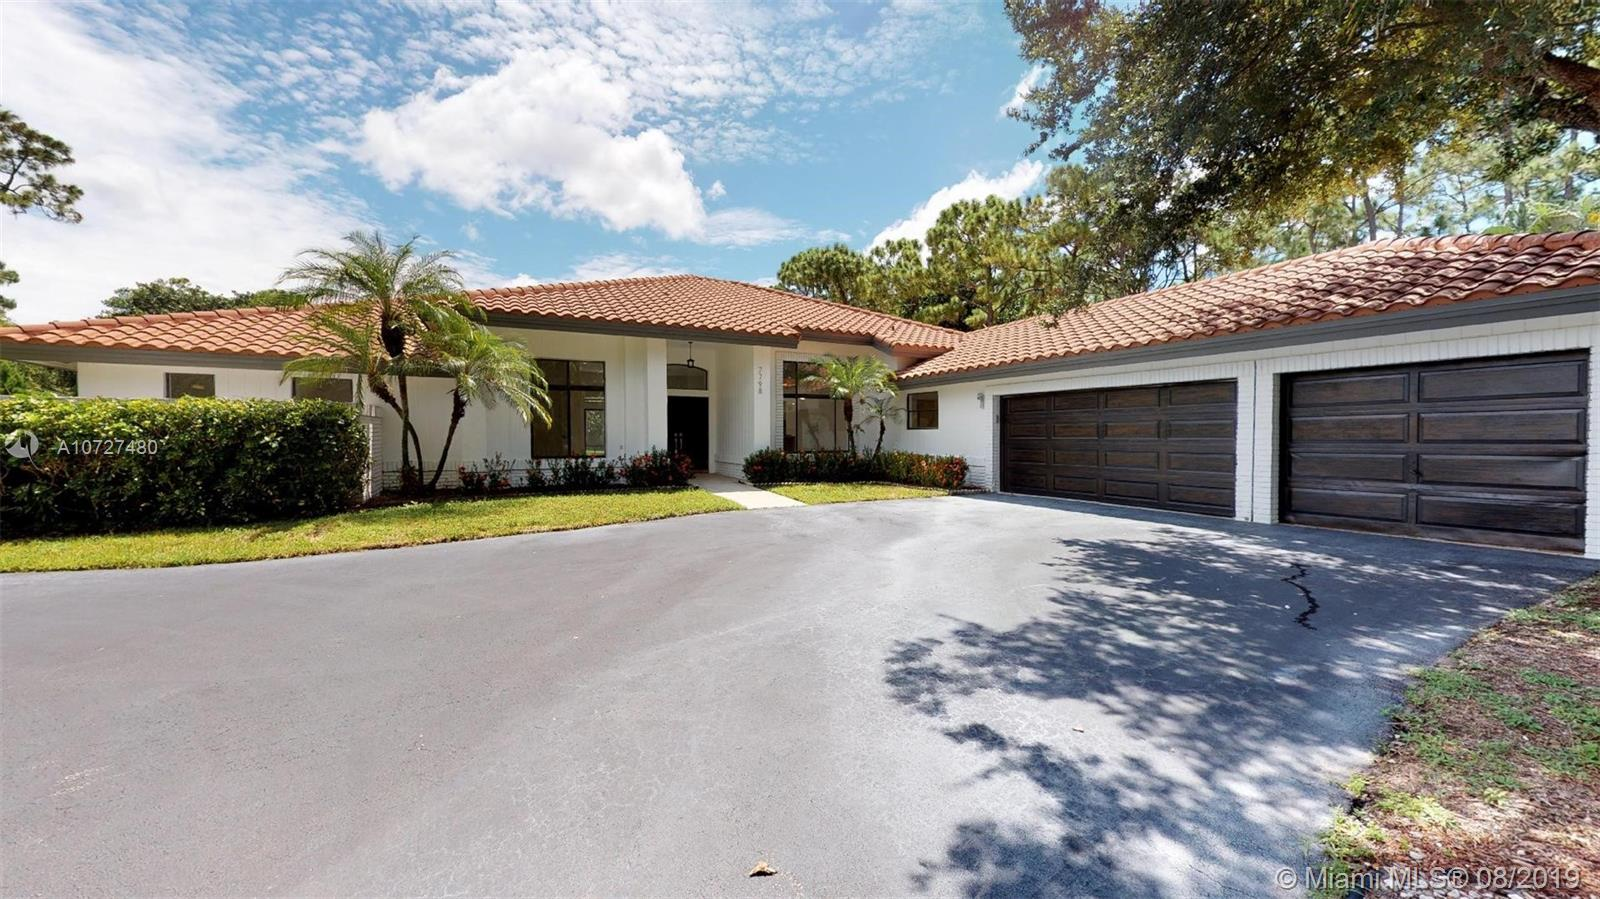 7798 NW 55th Pl, Coral Springs, FL 33067